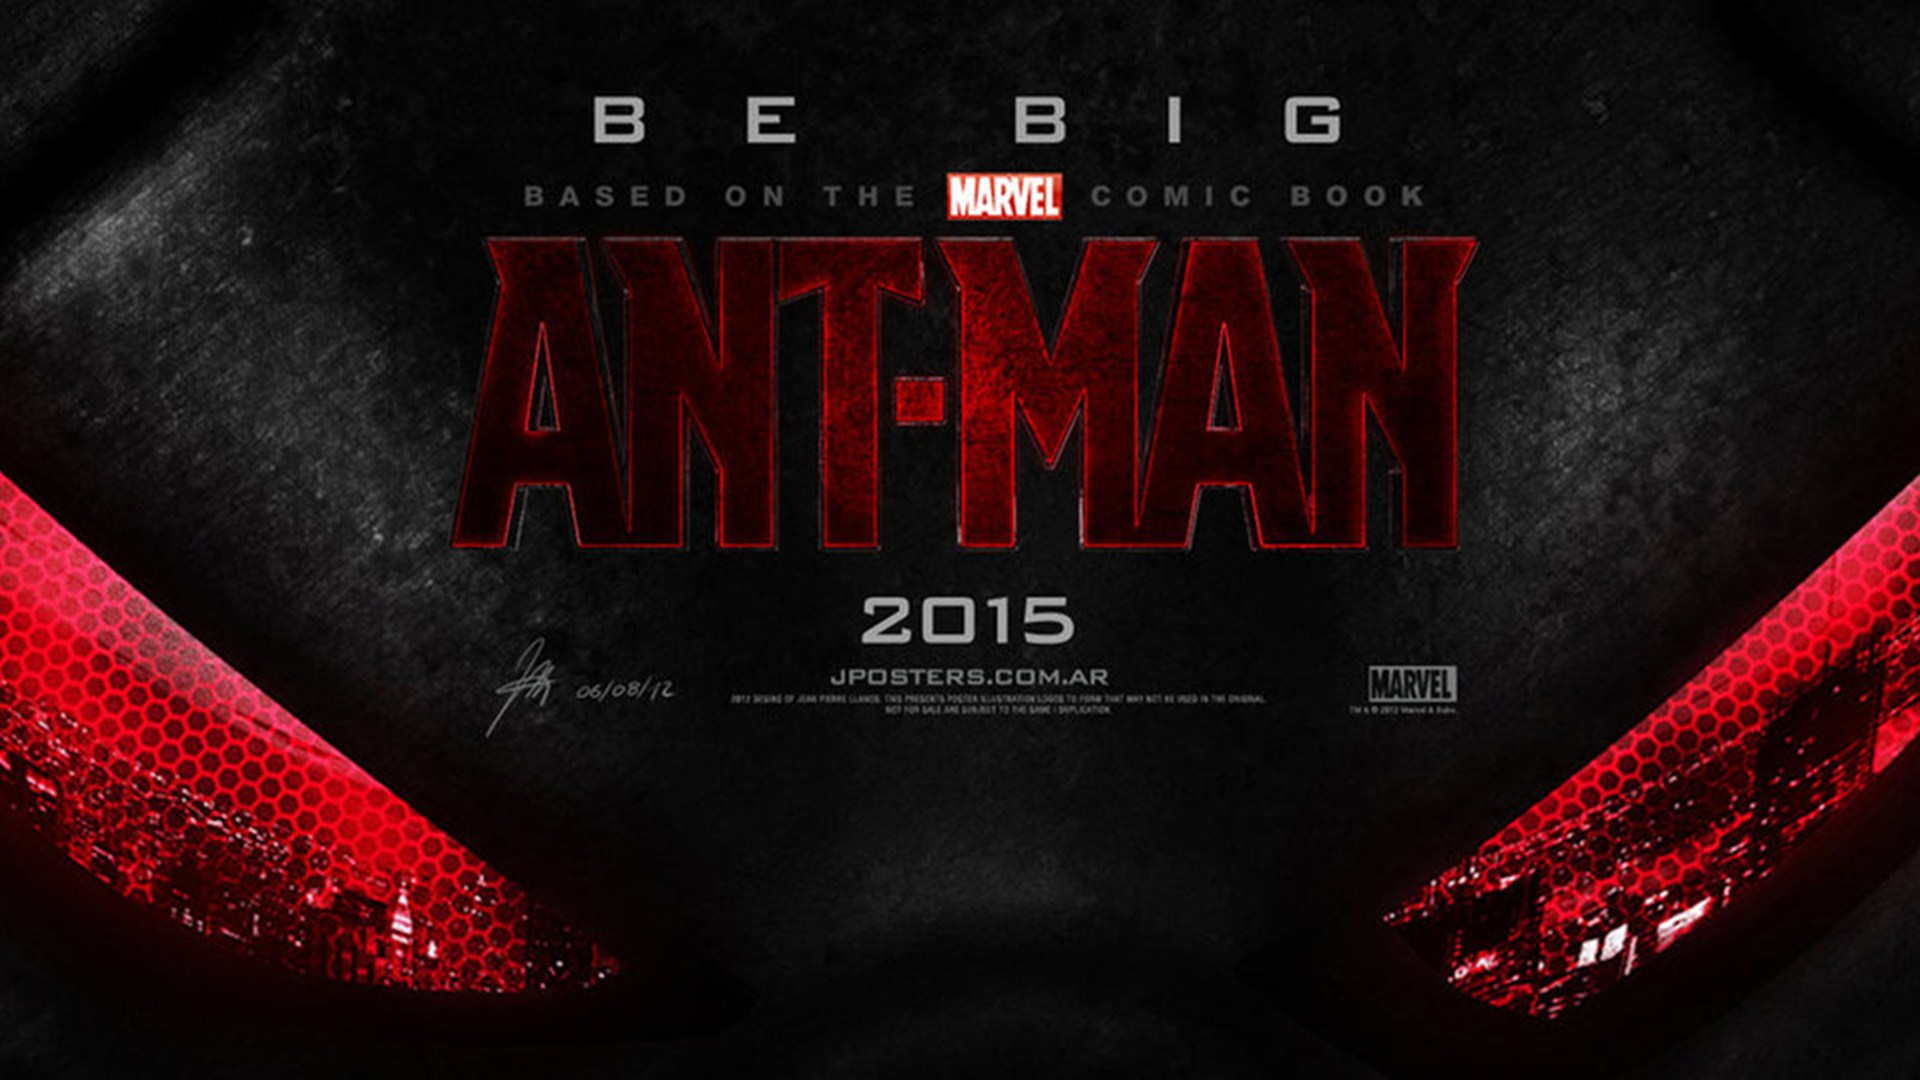 Download Marvel Comic Book Ant Man 2015 HD Wallpaper Search more high 1920x1080